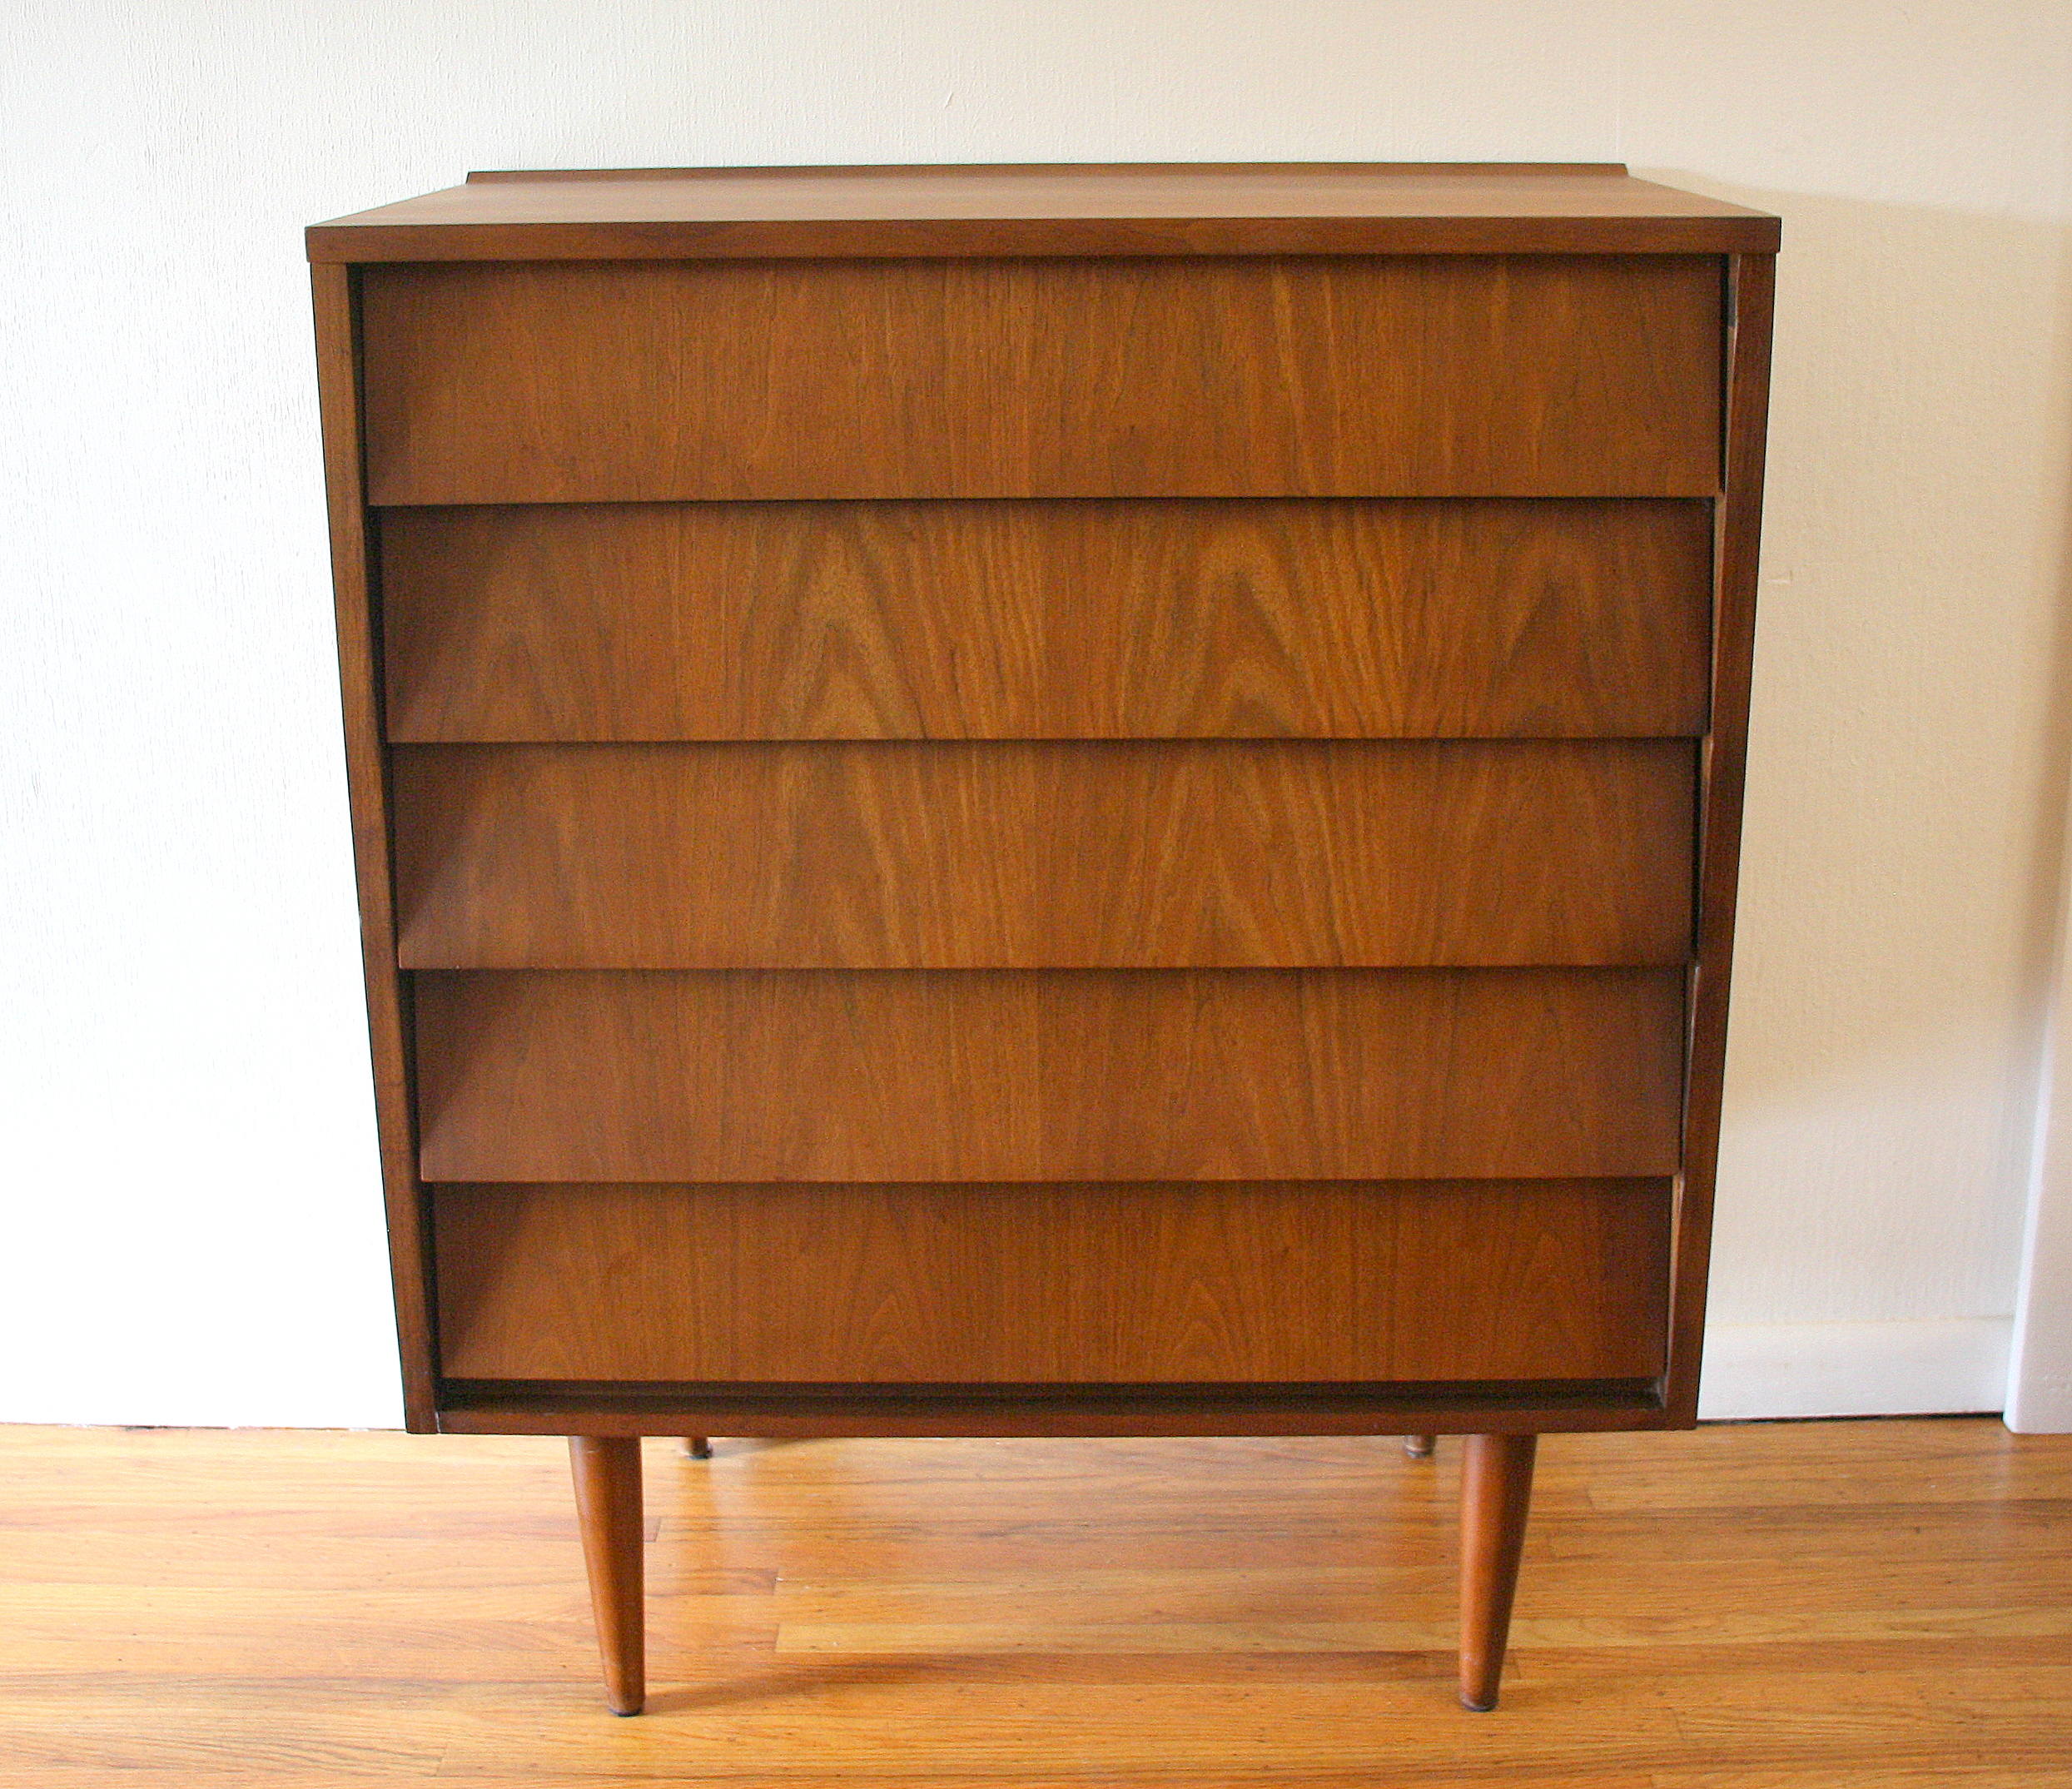 Mcm louvered tall dresser 1.JPG